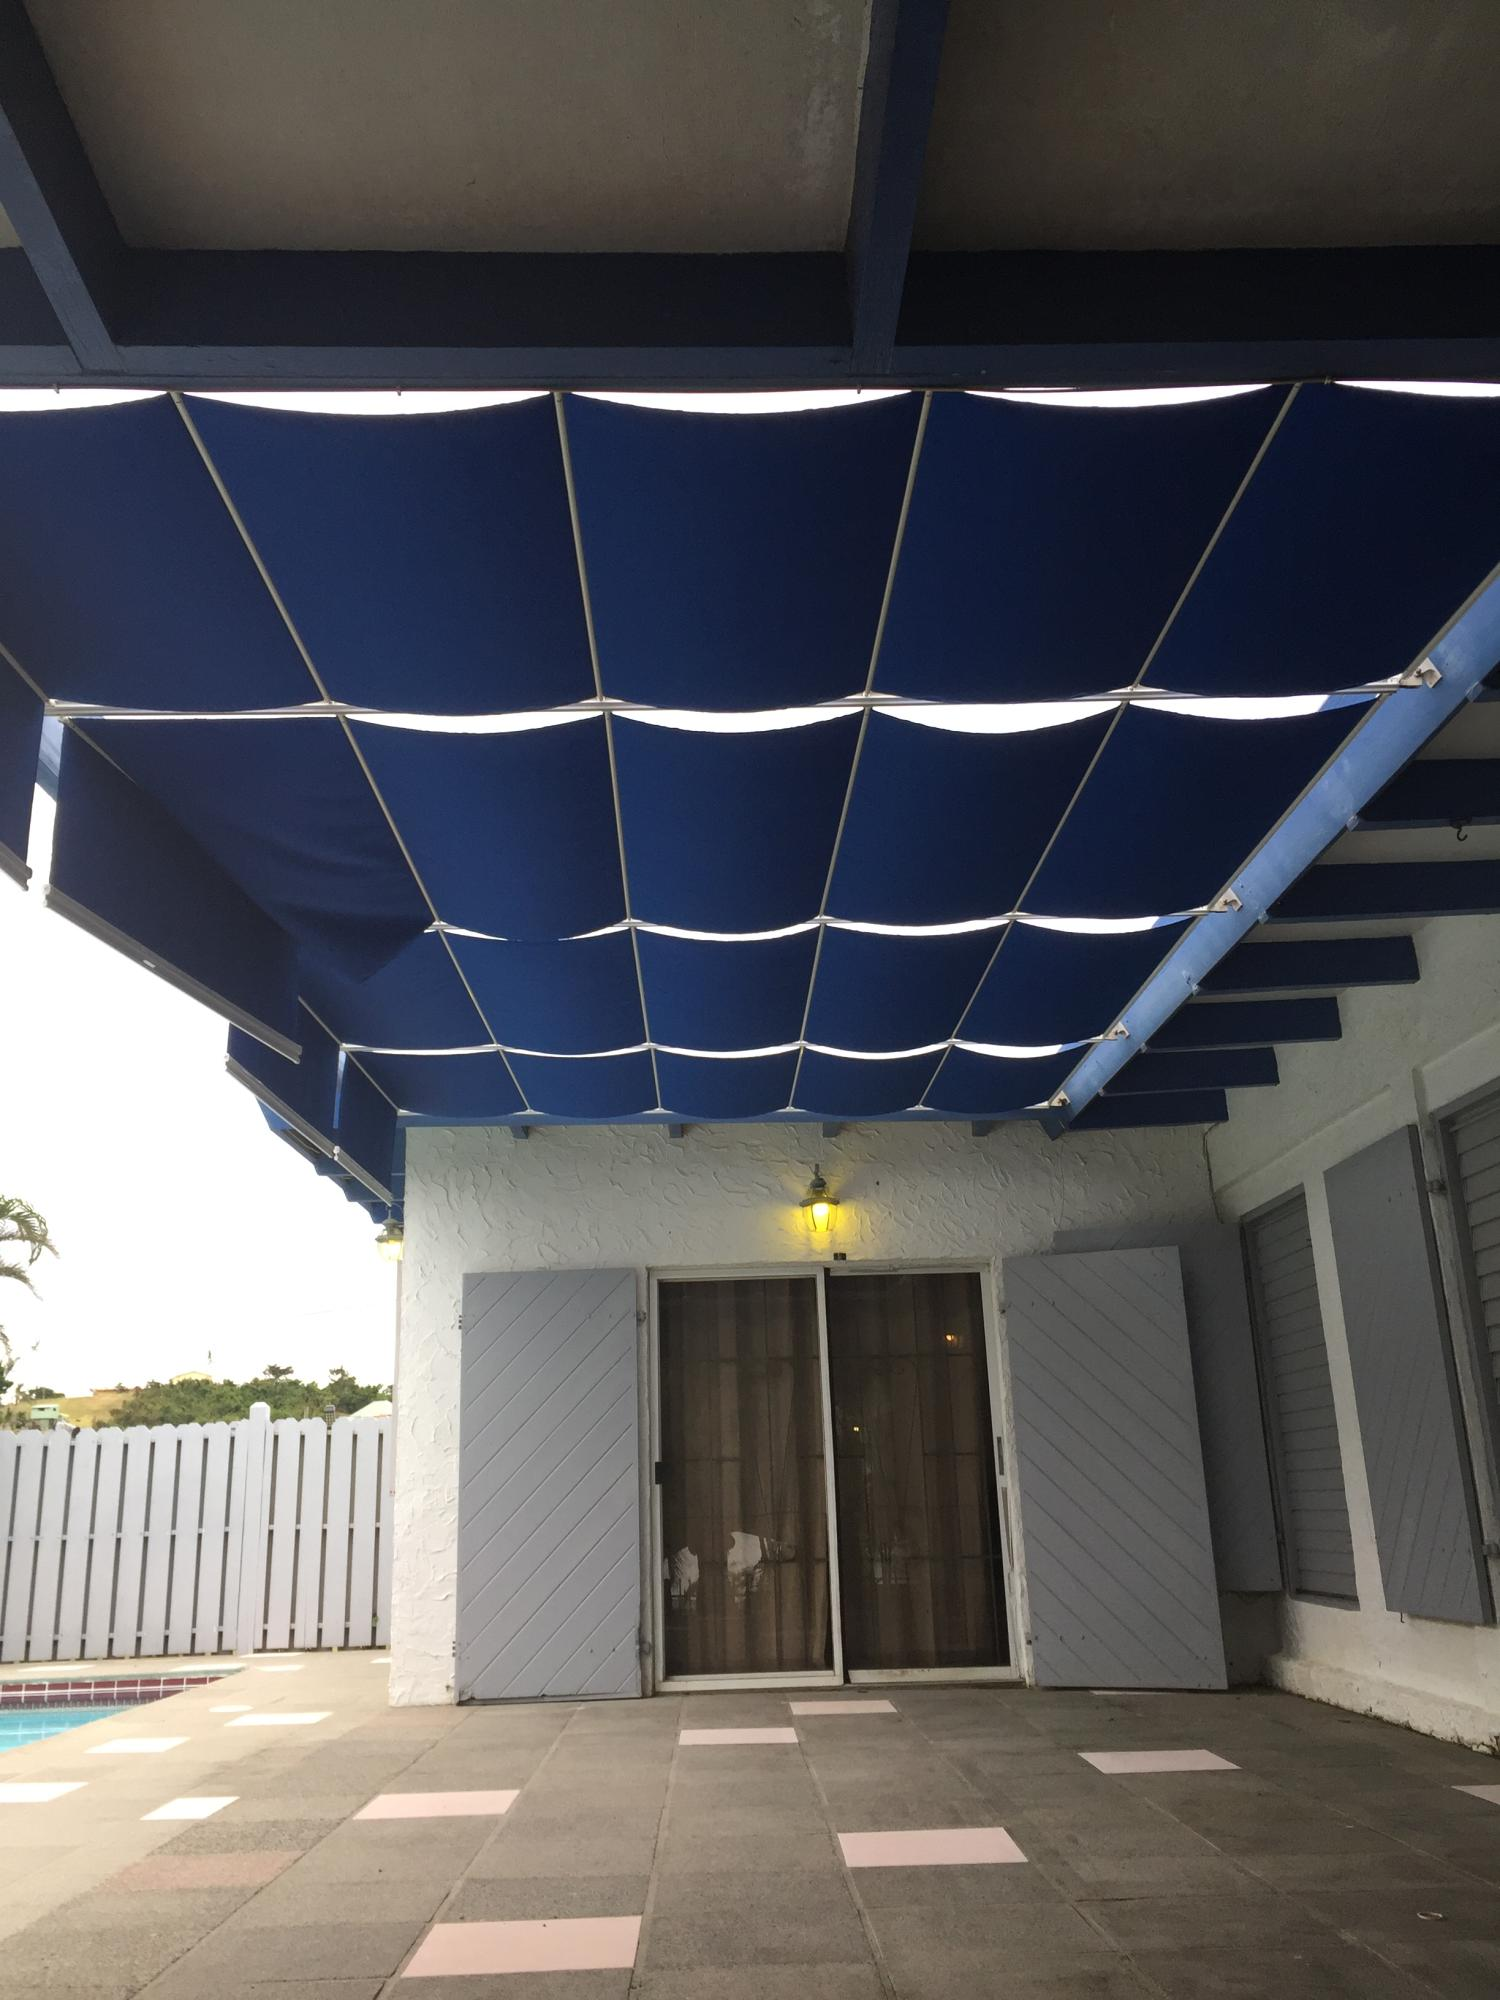 New shade cover adjacent to pool